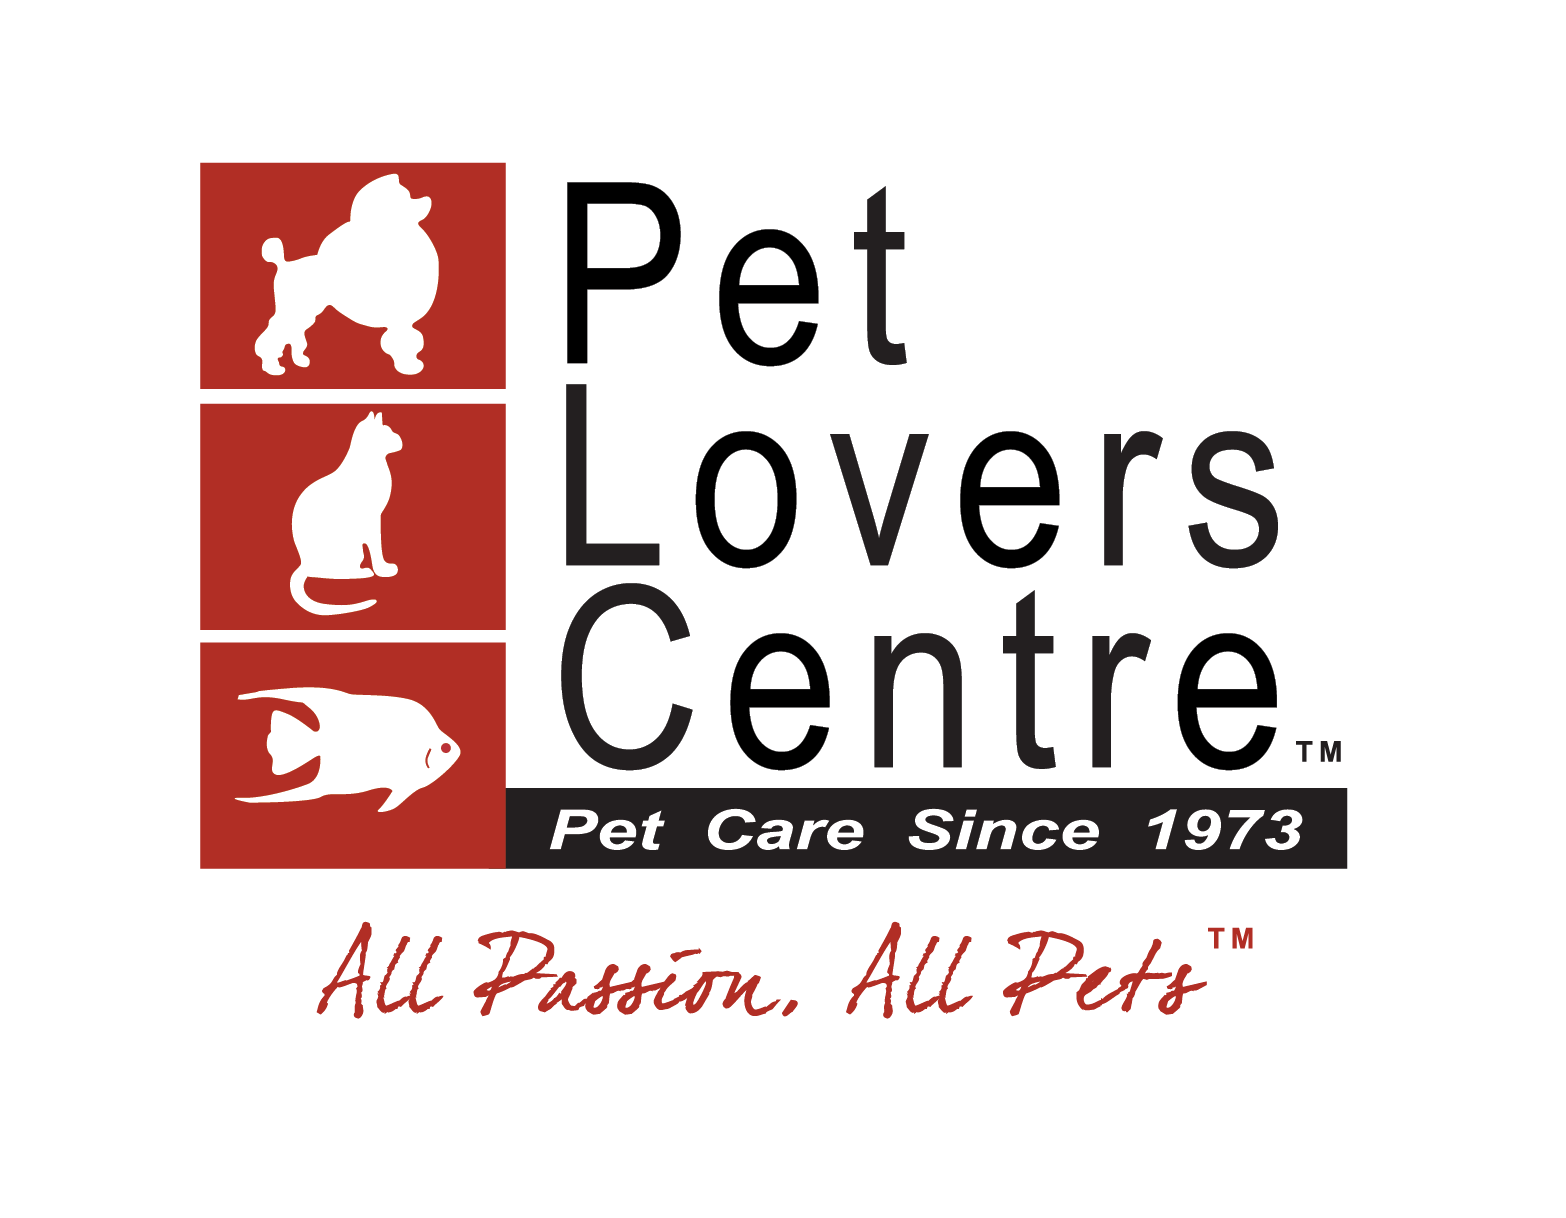 Pet Lovers Centre Malaysia Help Center home page